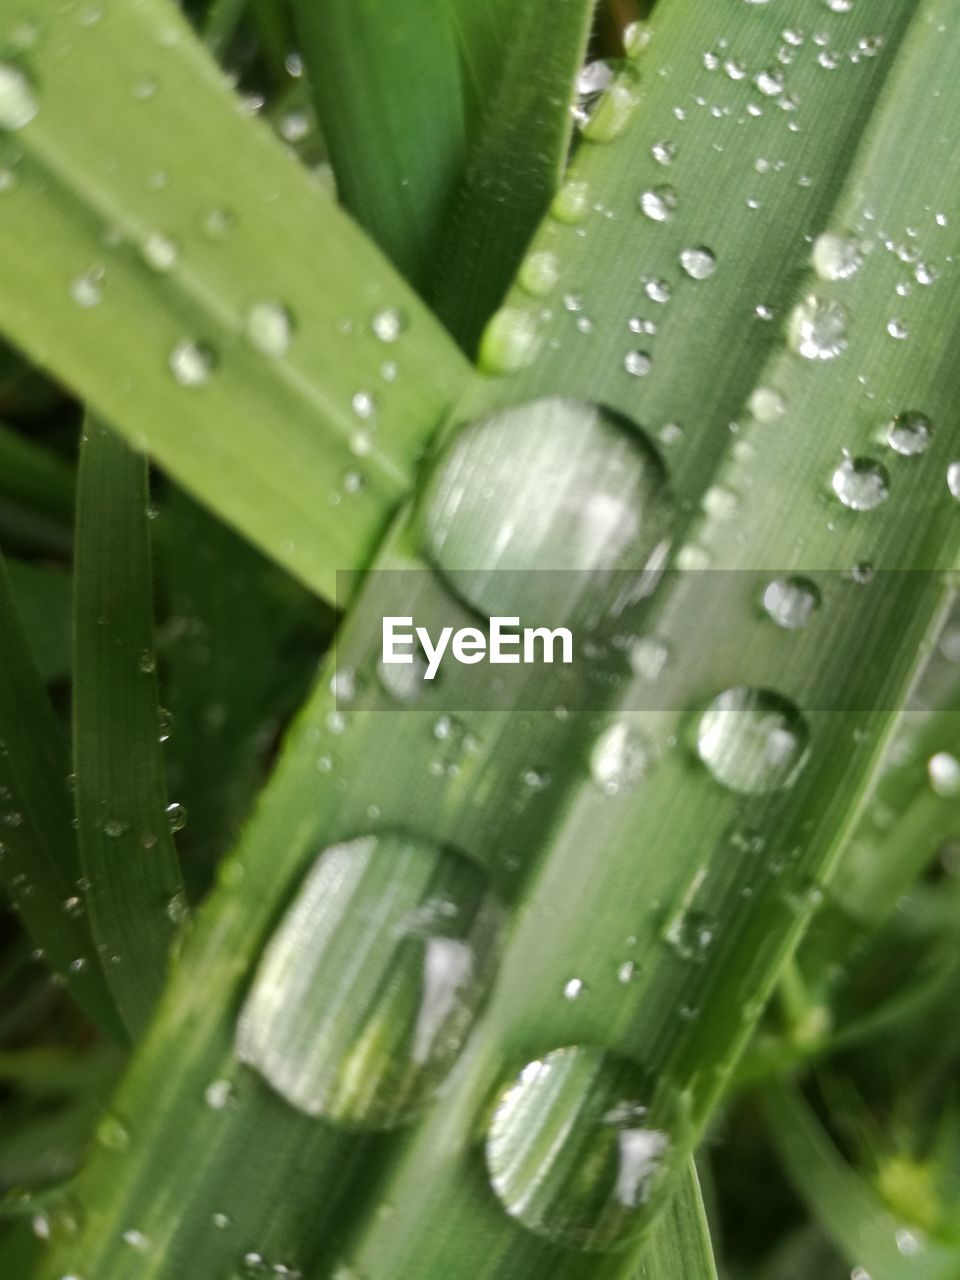 green color, drop, close-up, nature, leaf, wet, plant, growth, water, aloe vera plant, aloe, no people, freshness, day, backgrounds, outdoors, raindrop, banana leaf, full frame, beauty in nature, healthcare and medicine, grass, fragility